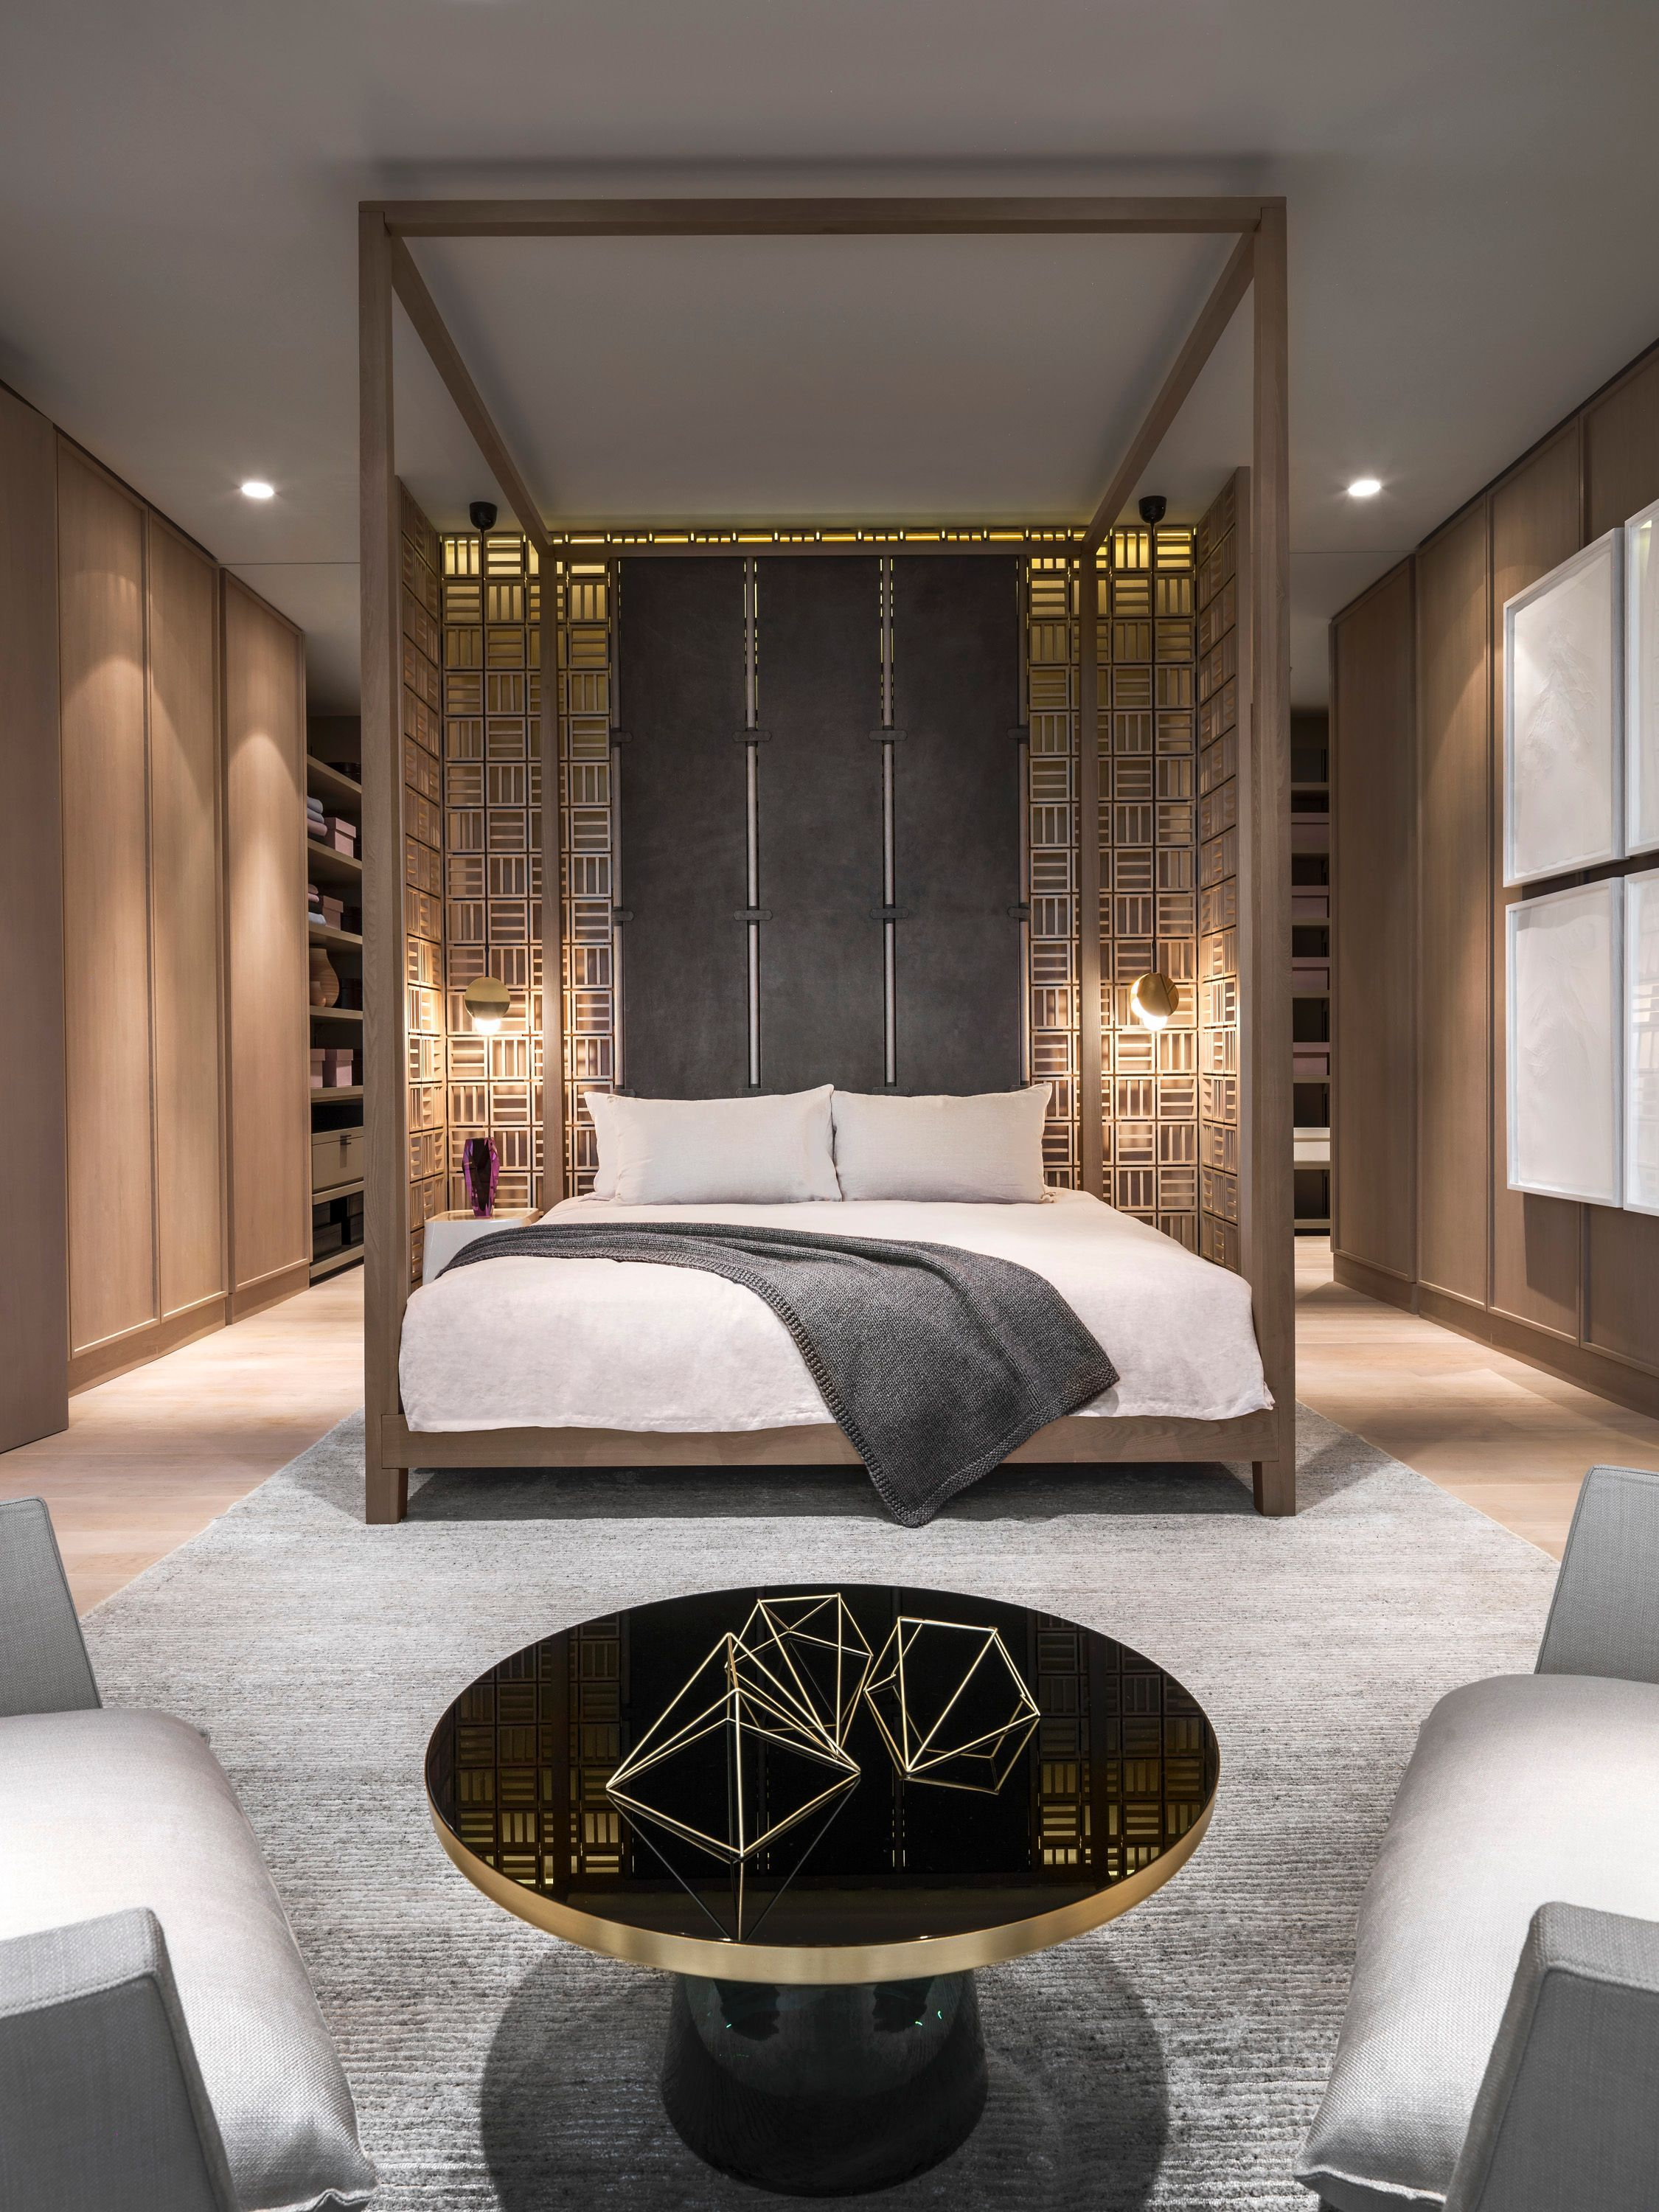 Yabu pushelberg amazing master bedroom best interior design top interior